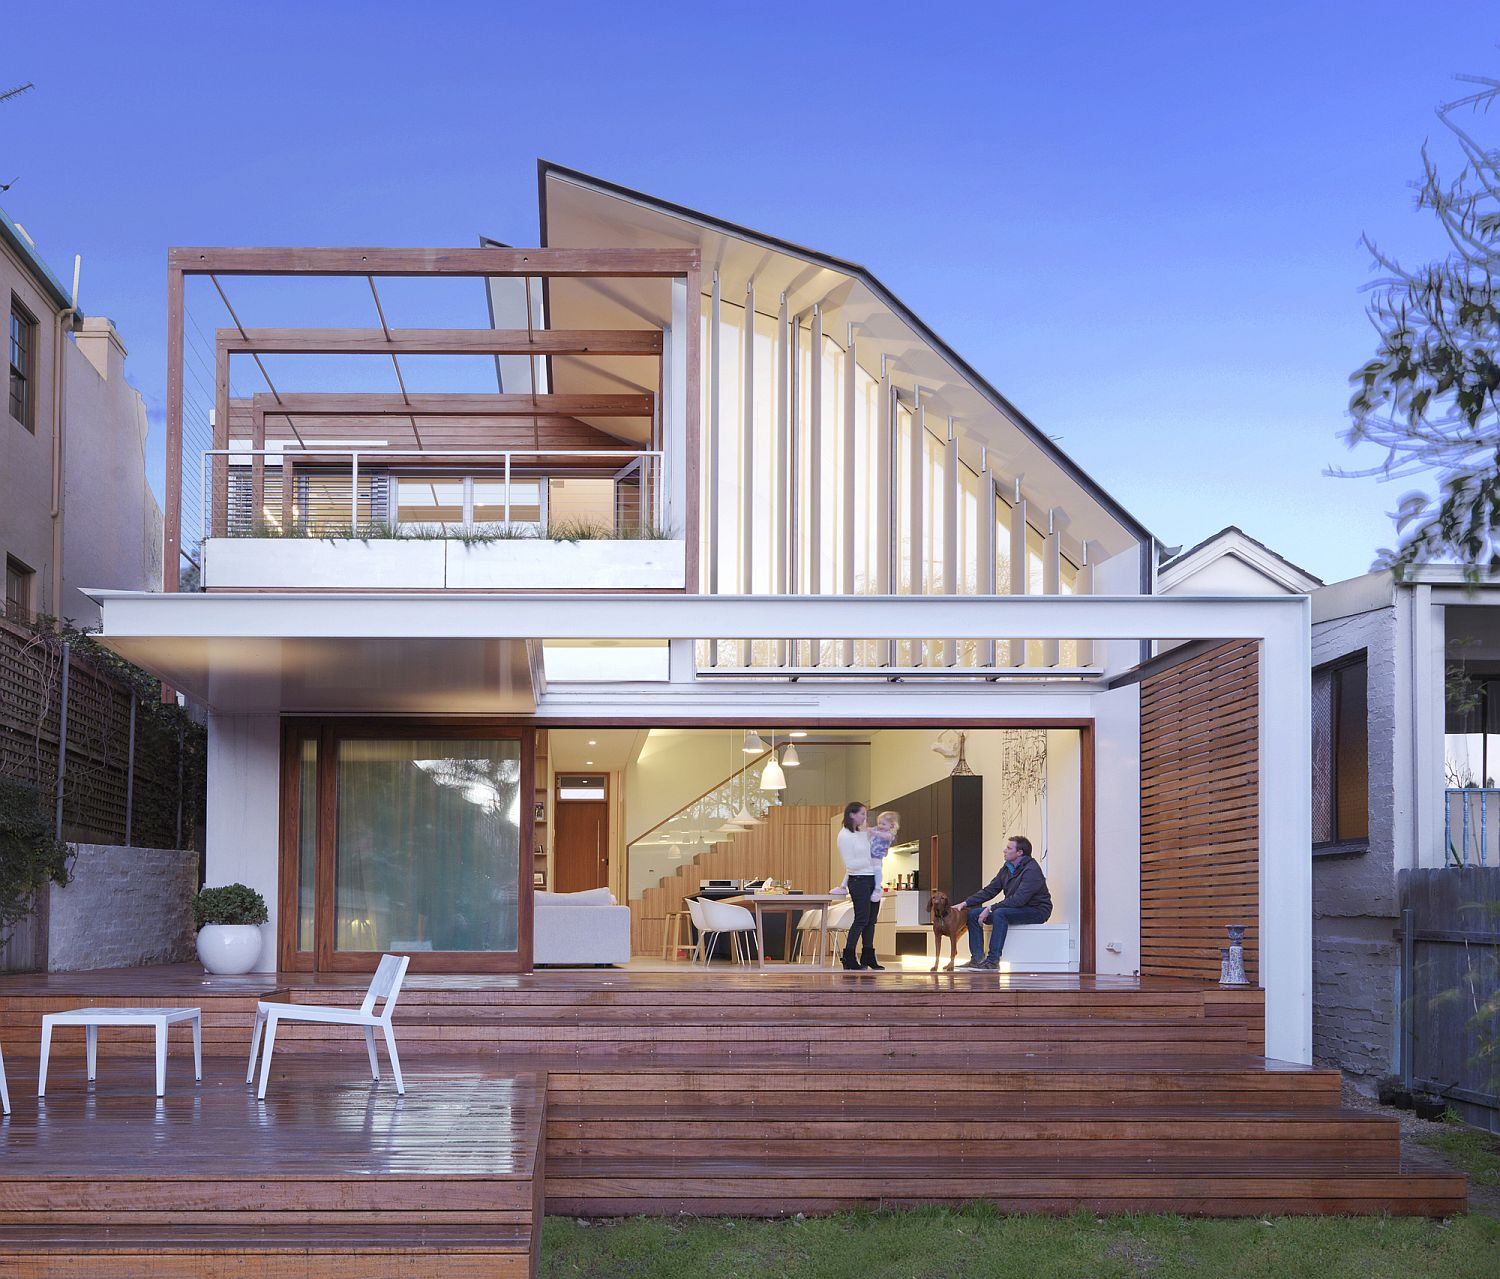 Contemporary Waverley House in Sydney with moving roof to deal with heat